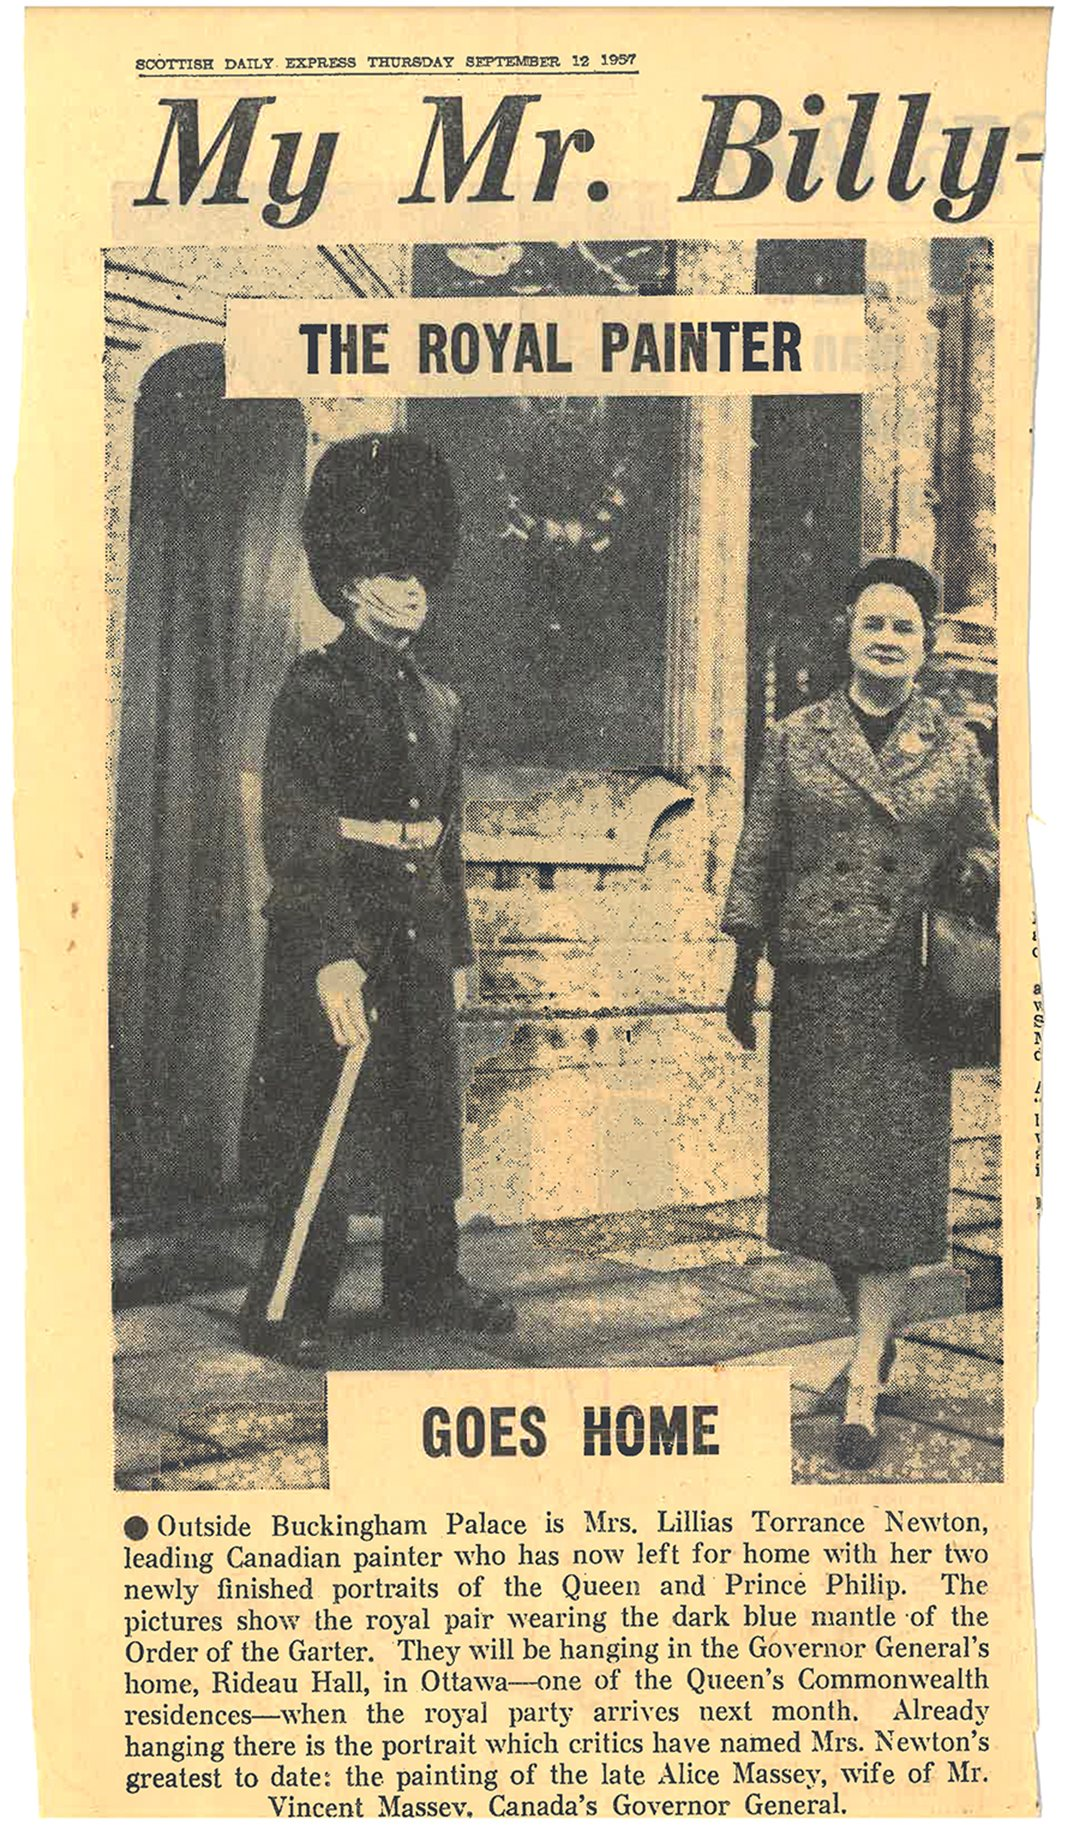 Lilias Torrance Newton's visit to Buckingham Palace to paint portraits of the Queen and Prince Philip made headlines in 1957, including in this edition of the Scottish Daily Express.